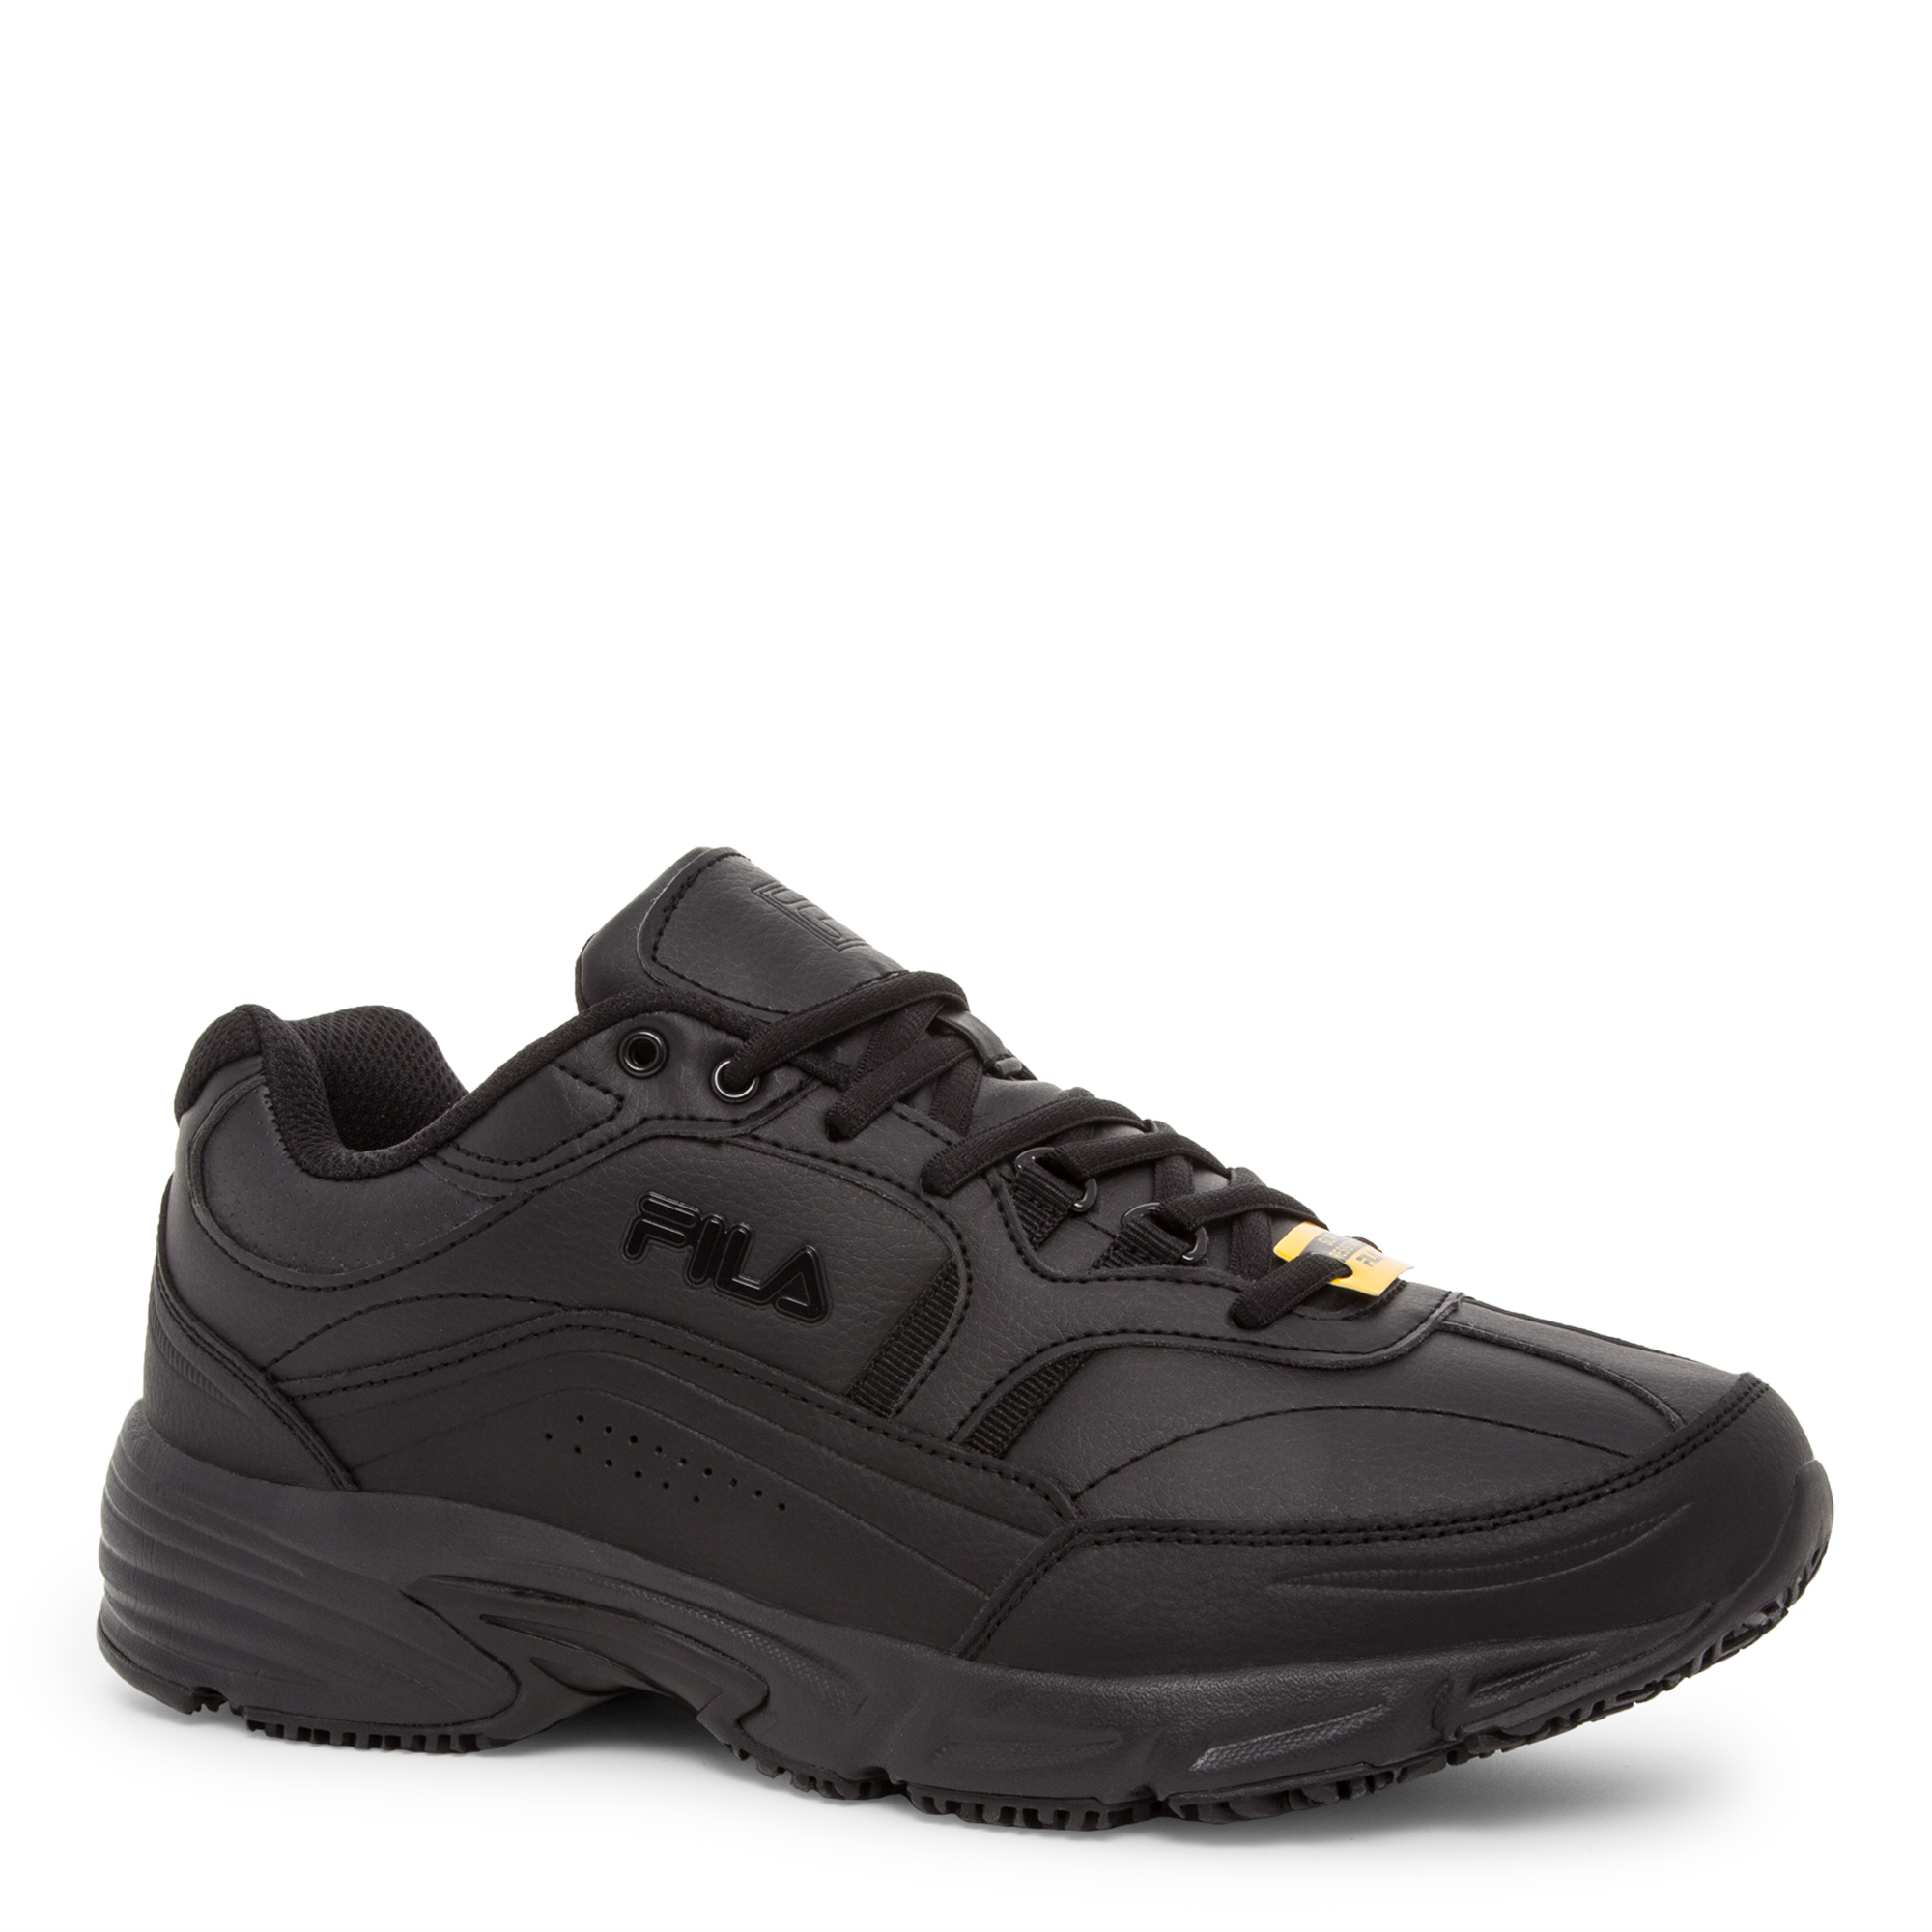 FILA USA Workshift Wide Sneaker